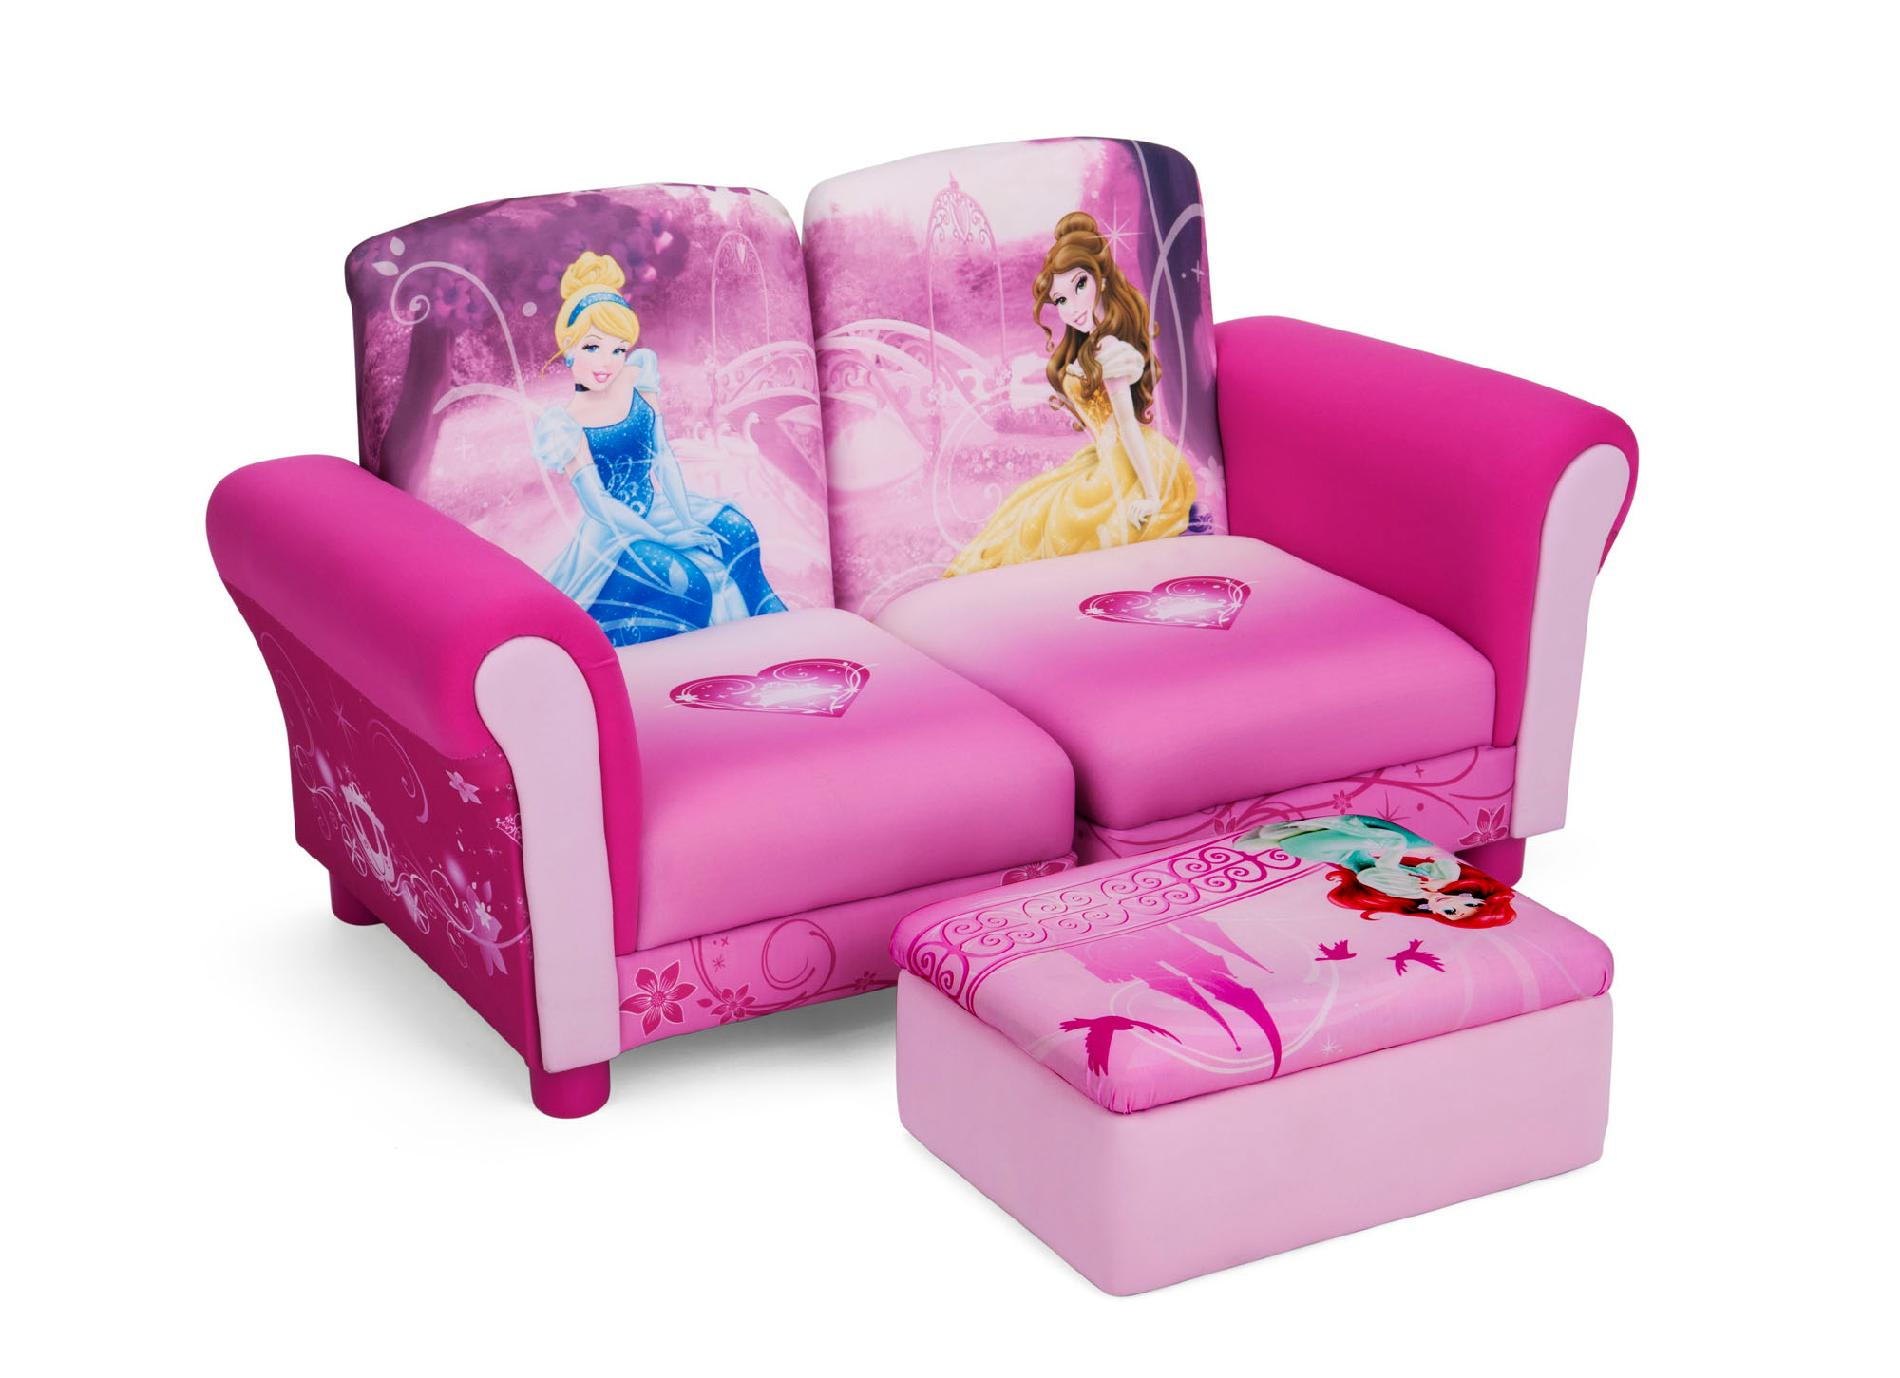 Toddler Couch Disney Sofa Chair Disney Minnie Mouse Toddler 2 In 1 Flip